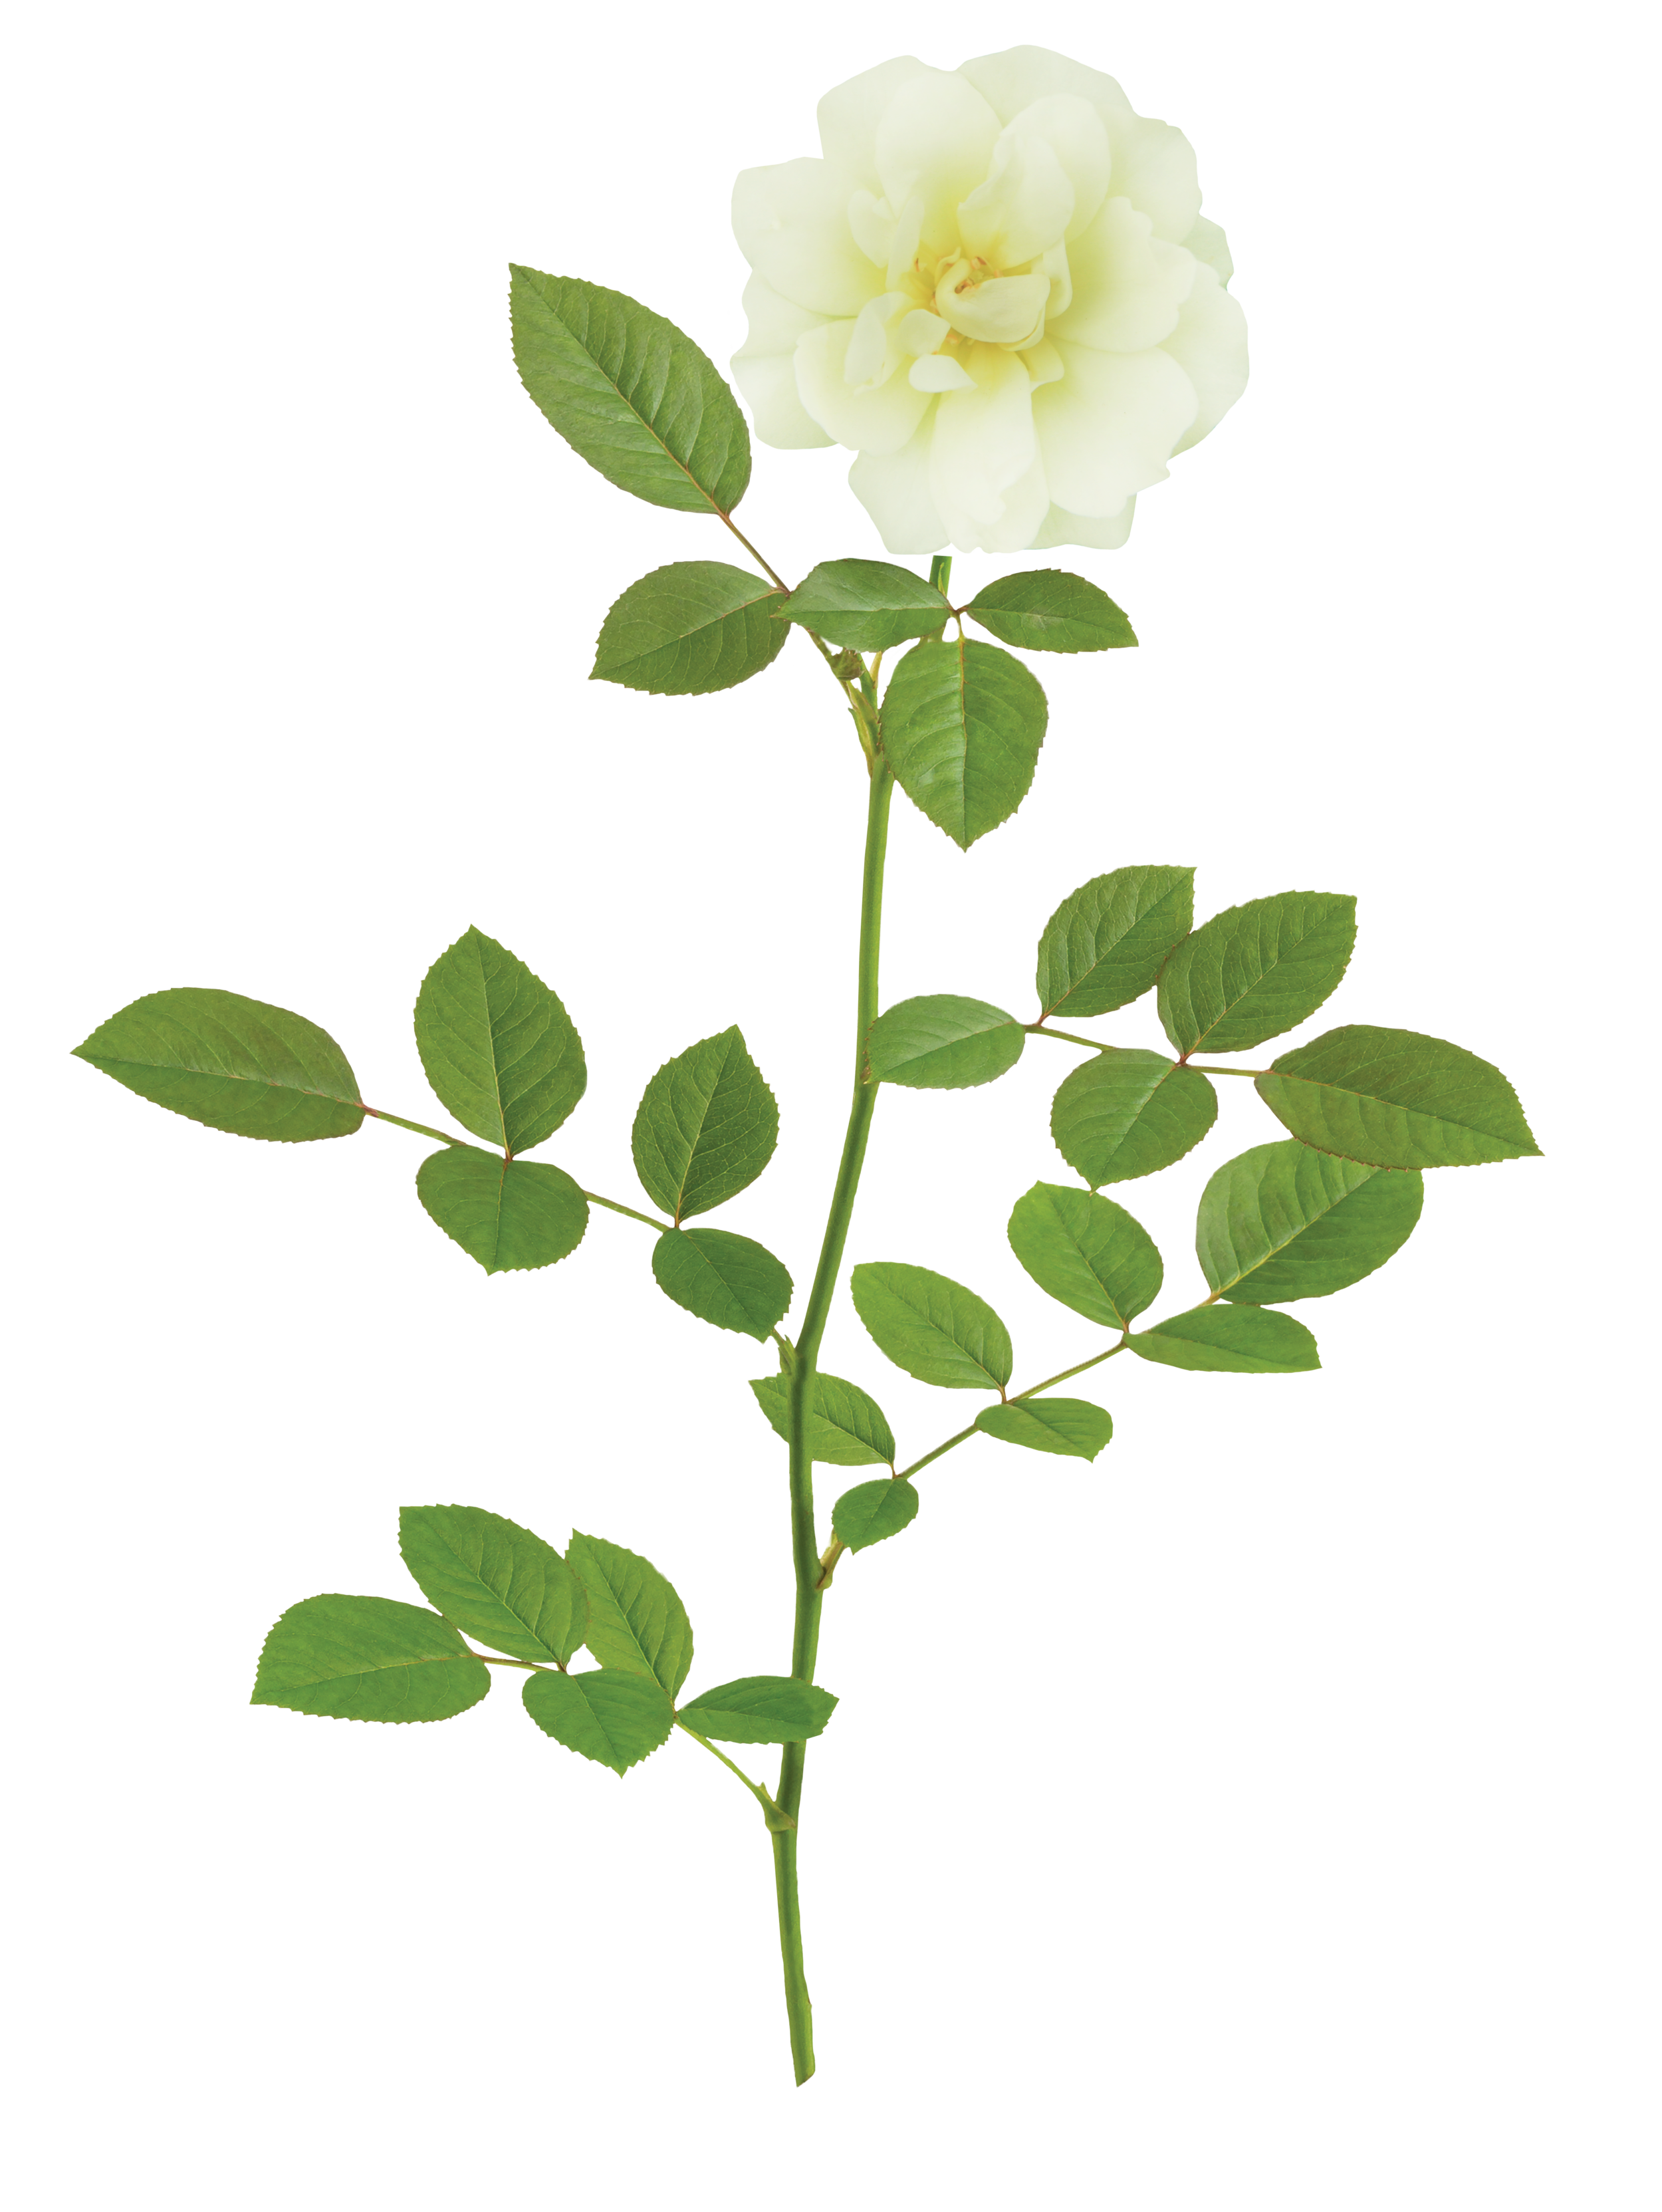 The Popcorn Drift® Rose - 'Novarospop' PP 24,773Popcorn Drift® has soft buttery yellow blooms that fade to a creamy white. This continuous bloomer flowers all season and pairs effortlessly with other plants. This variety can have slight coloration of Peach Drift®.Zones: 4–11 | Exposure: Full sun | Habit: 1½' h x 2' w